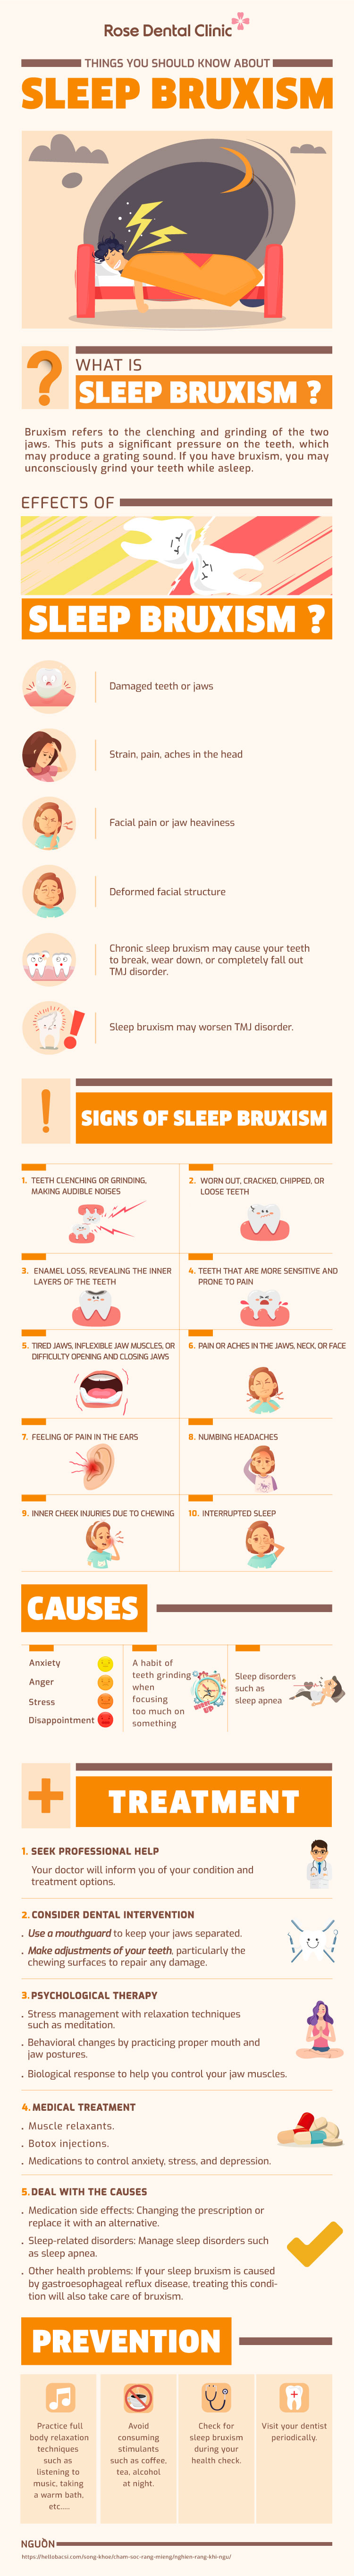 Things you should know about sleep bruxism